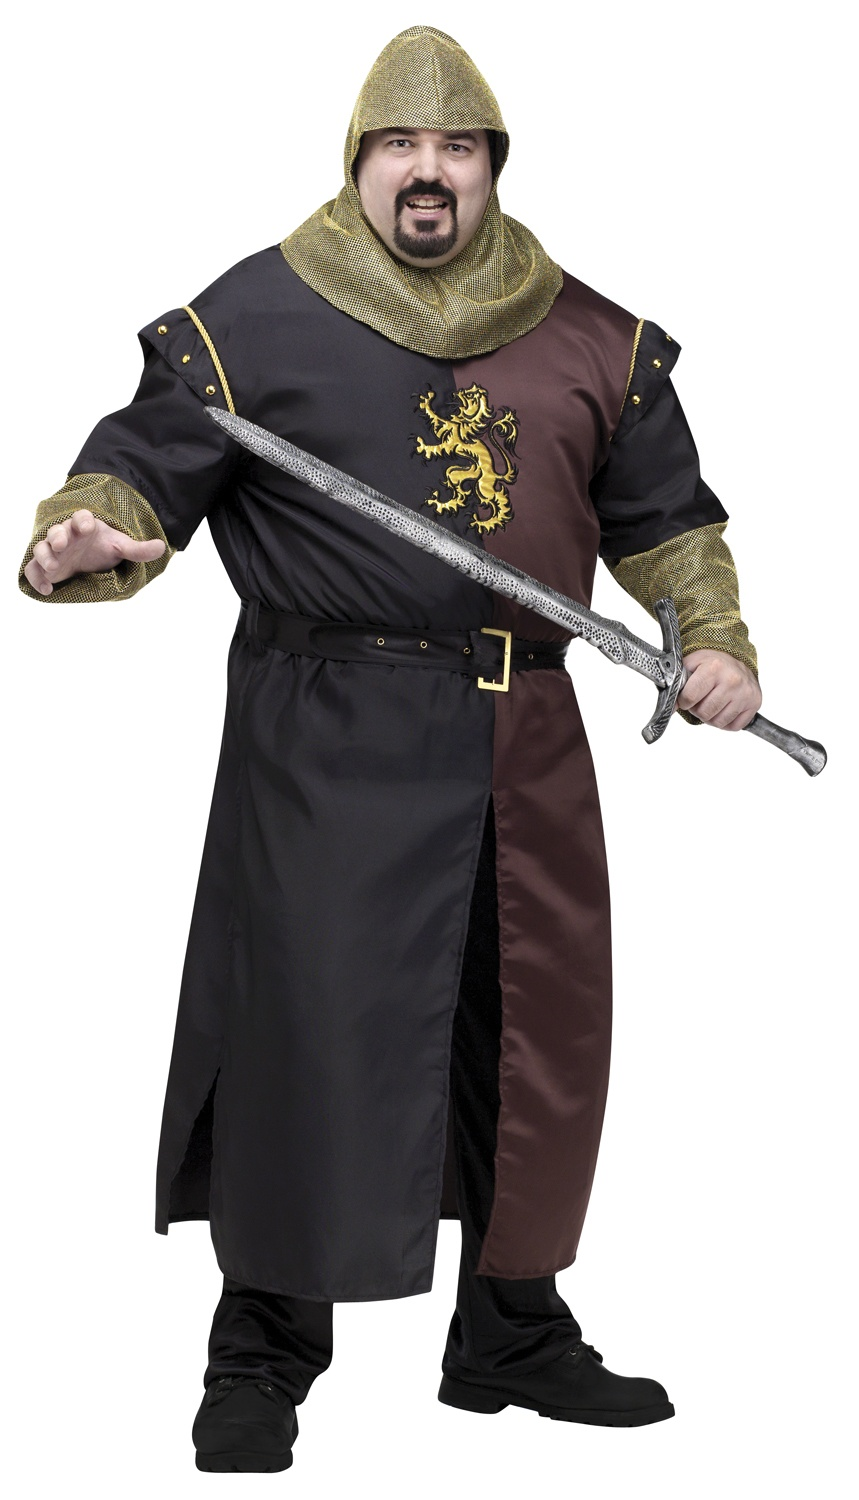 Plus Size Renaissance Knight Costume - Adult Costumes